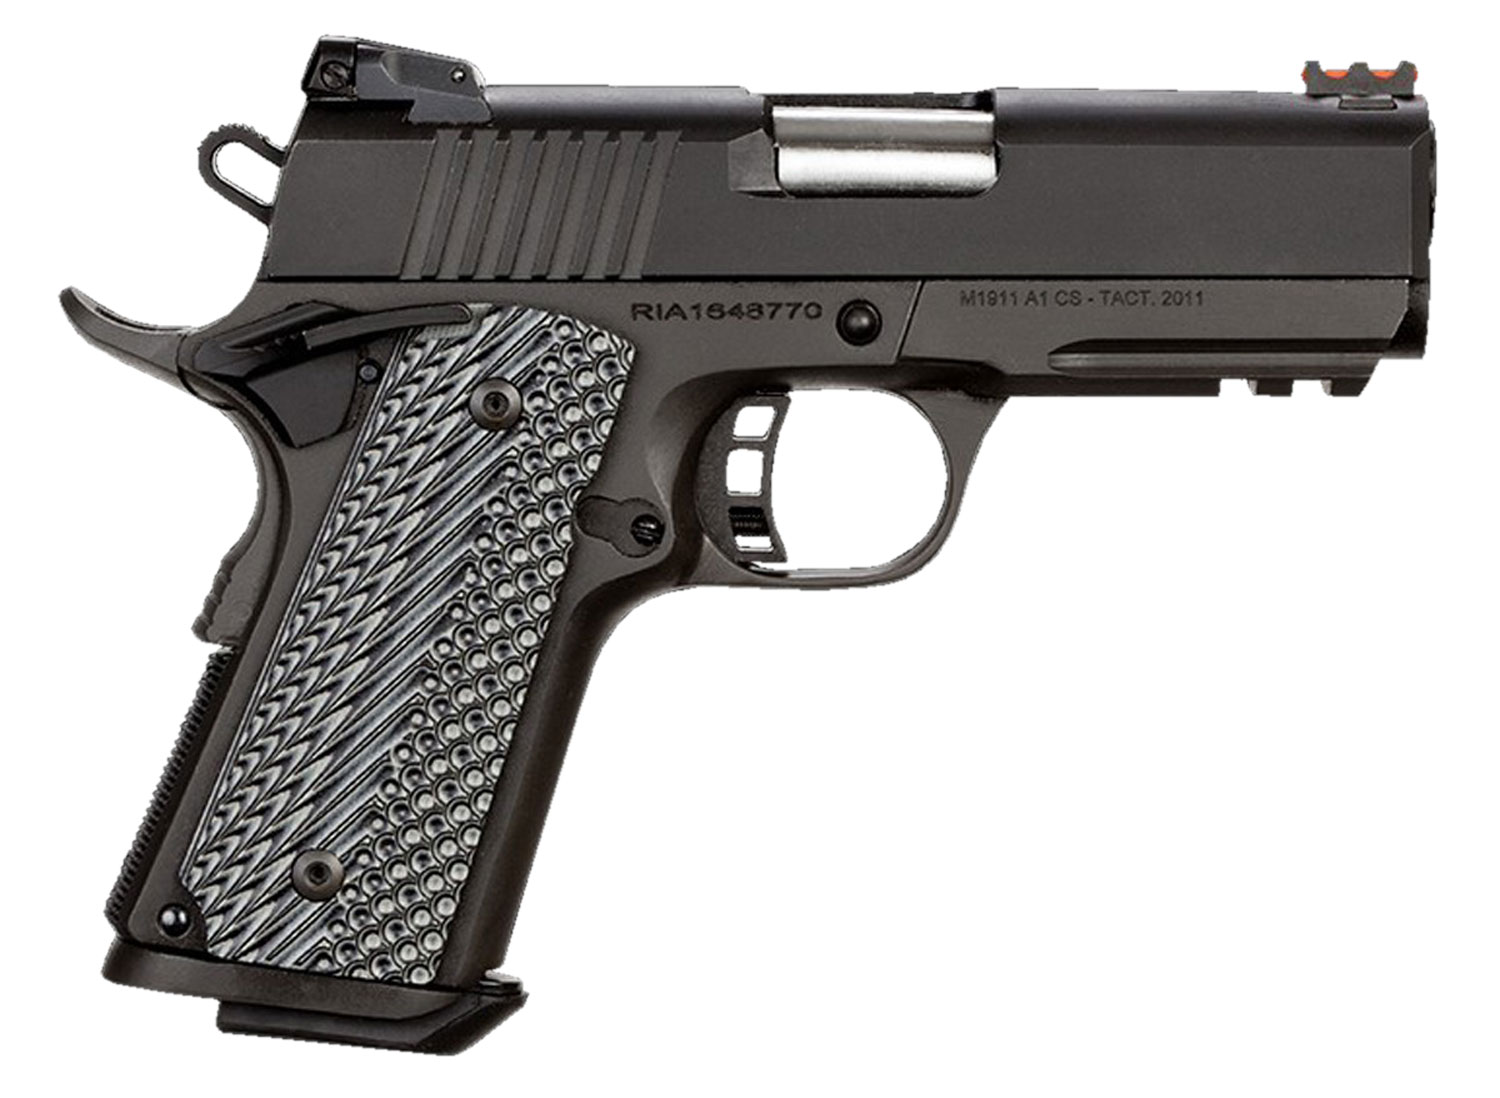 Rock Island 51470 TAC Ultra CS Single 45 ACP 3.5